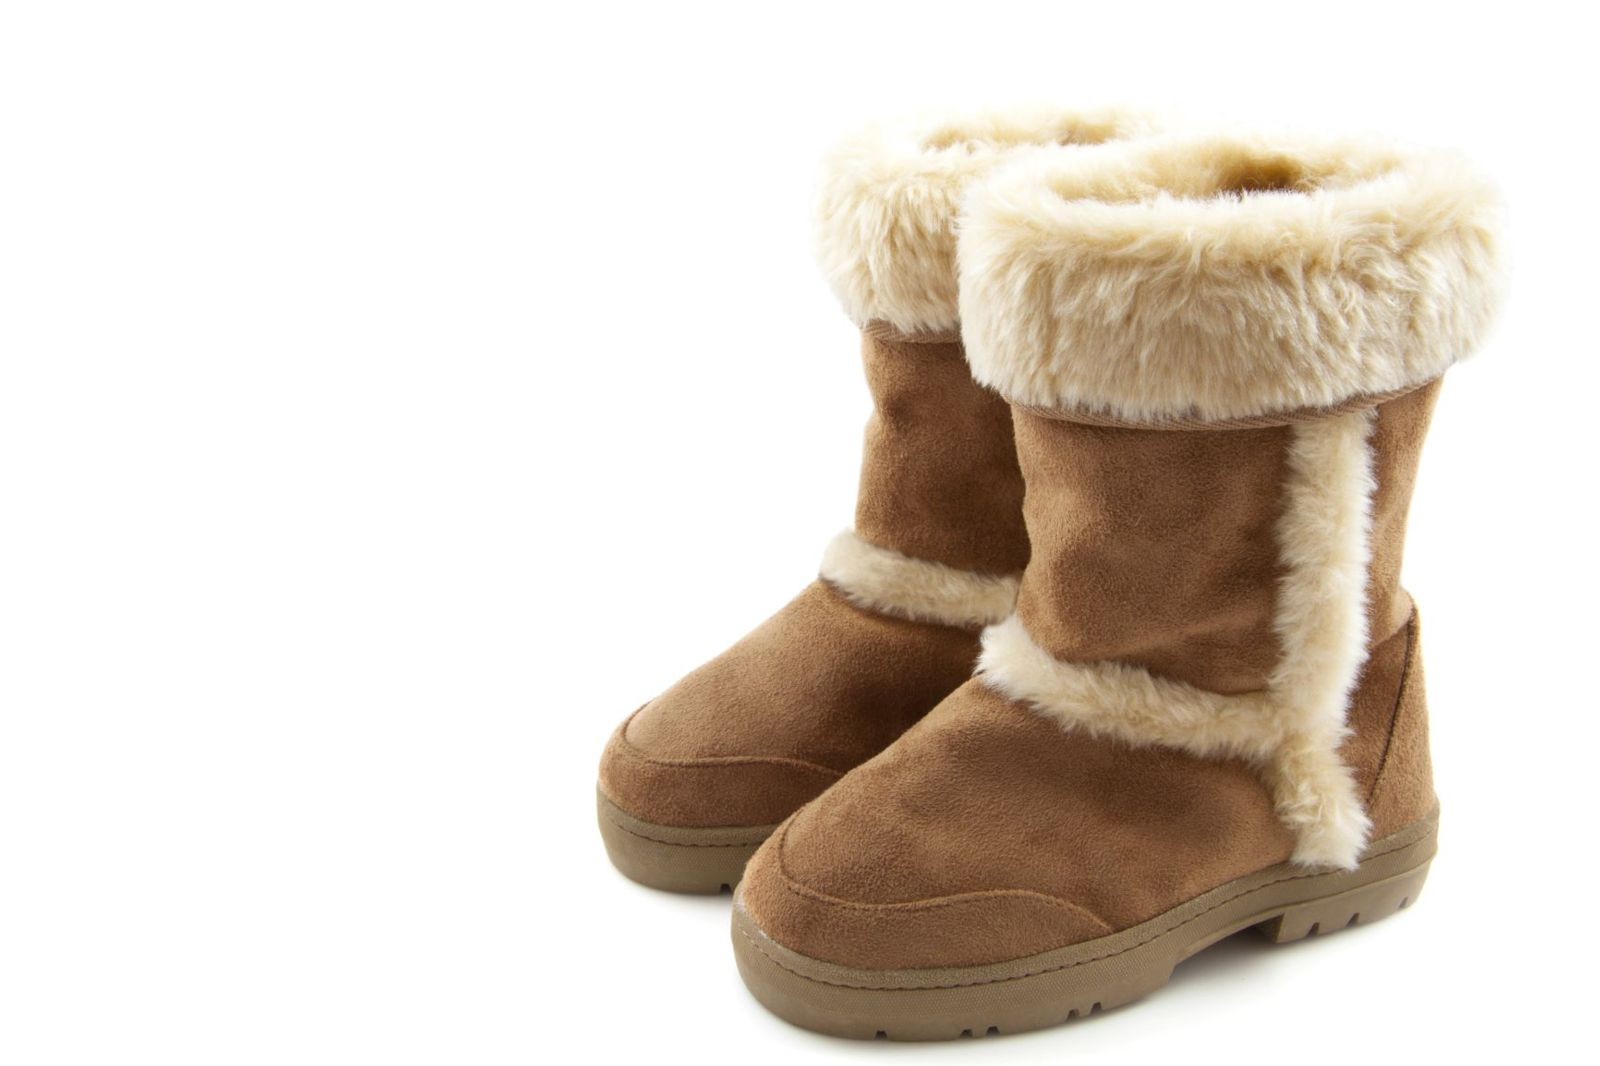 Ugg style flat boots are just screaming for the support of custom orthotics, but the orthotics you already own may not fit in your winter boots!